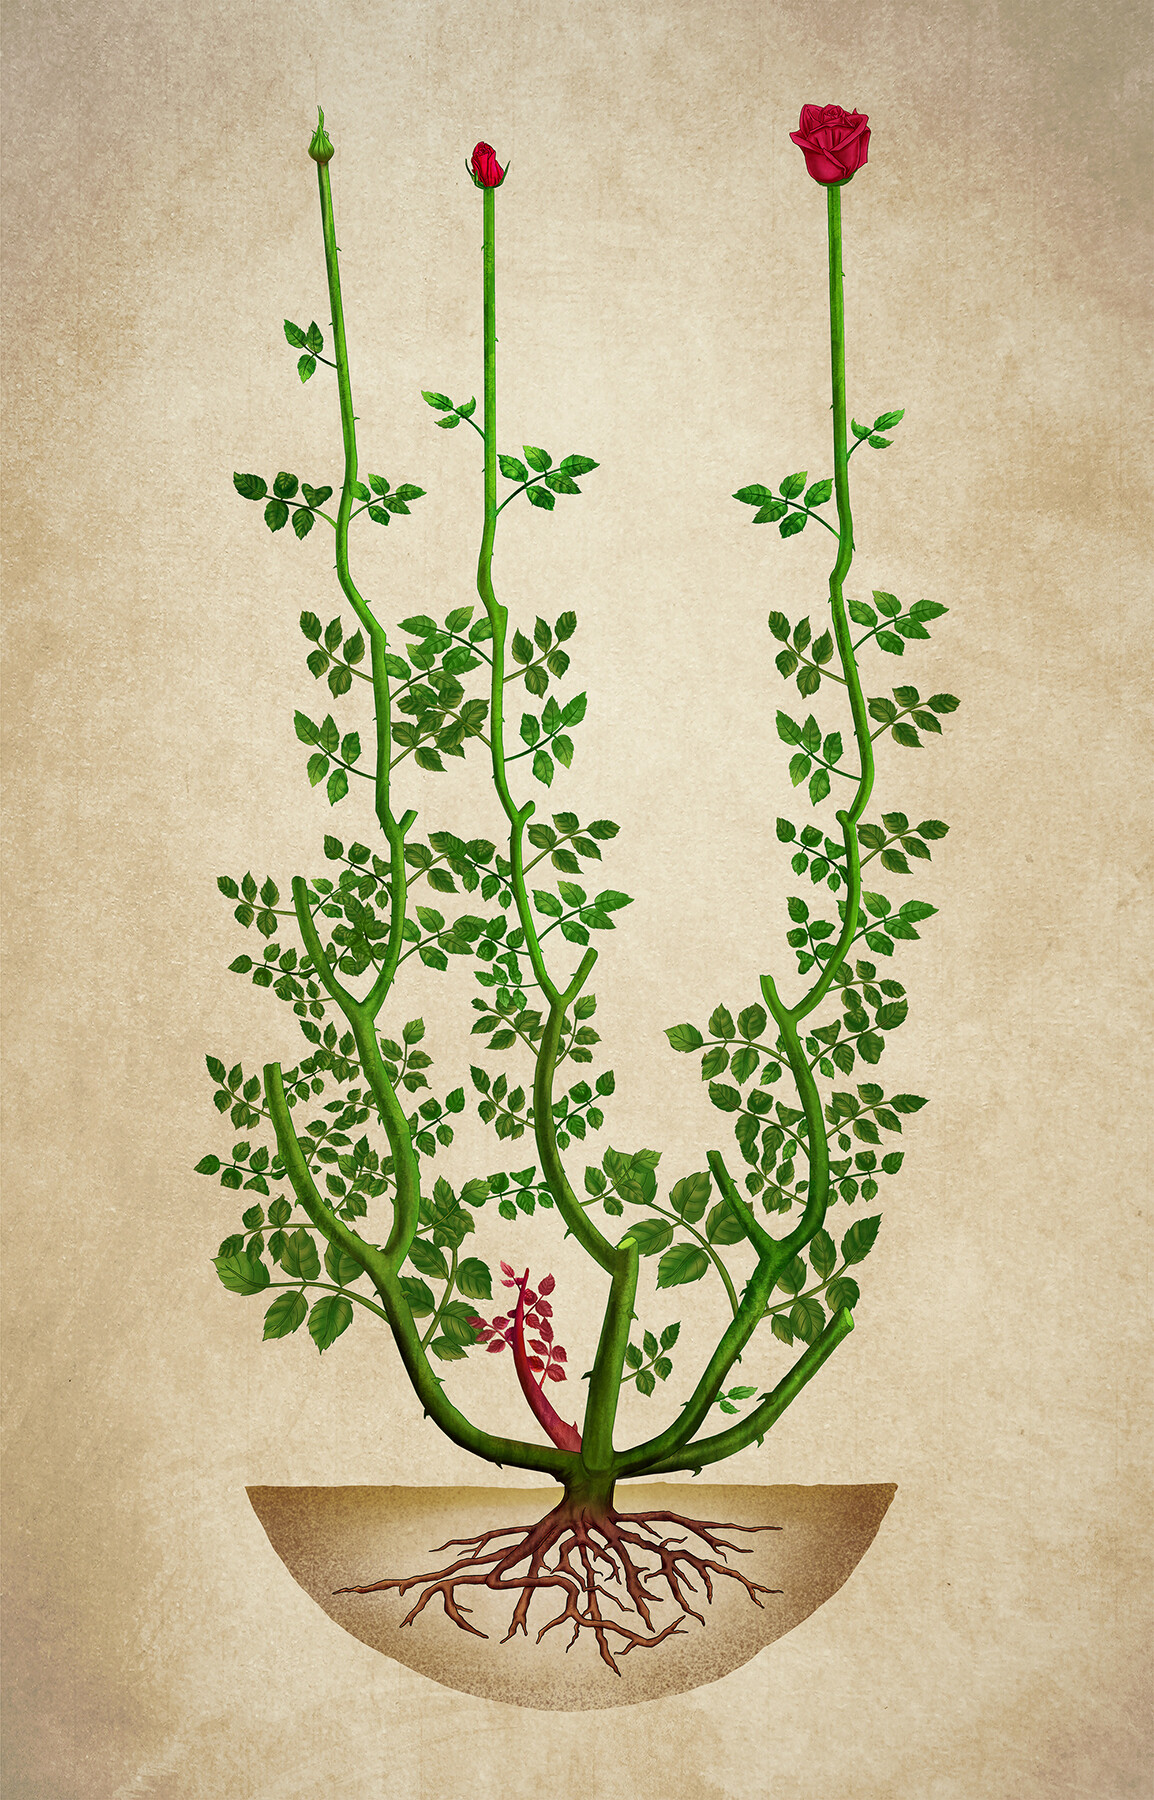 Roses - Science Illustration for infographic video.  Client: Aleta Audiovisual